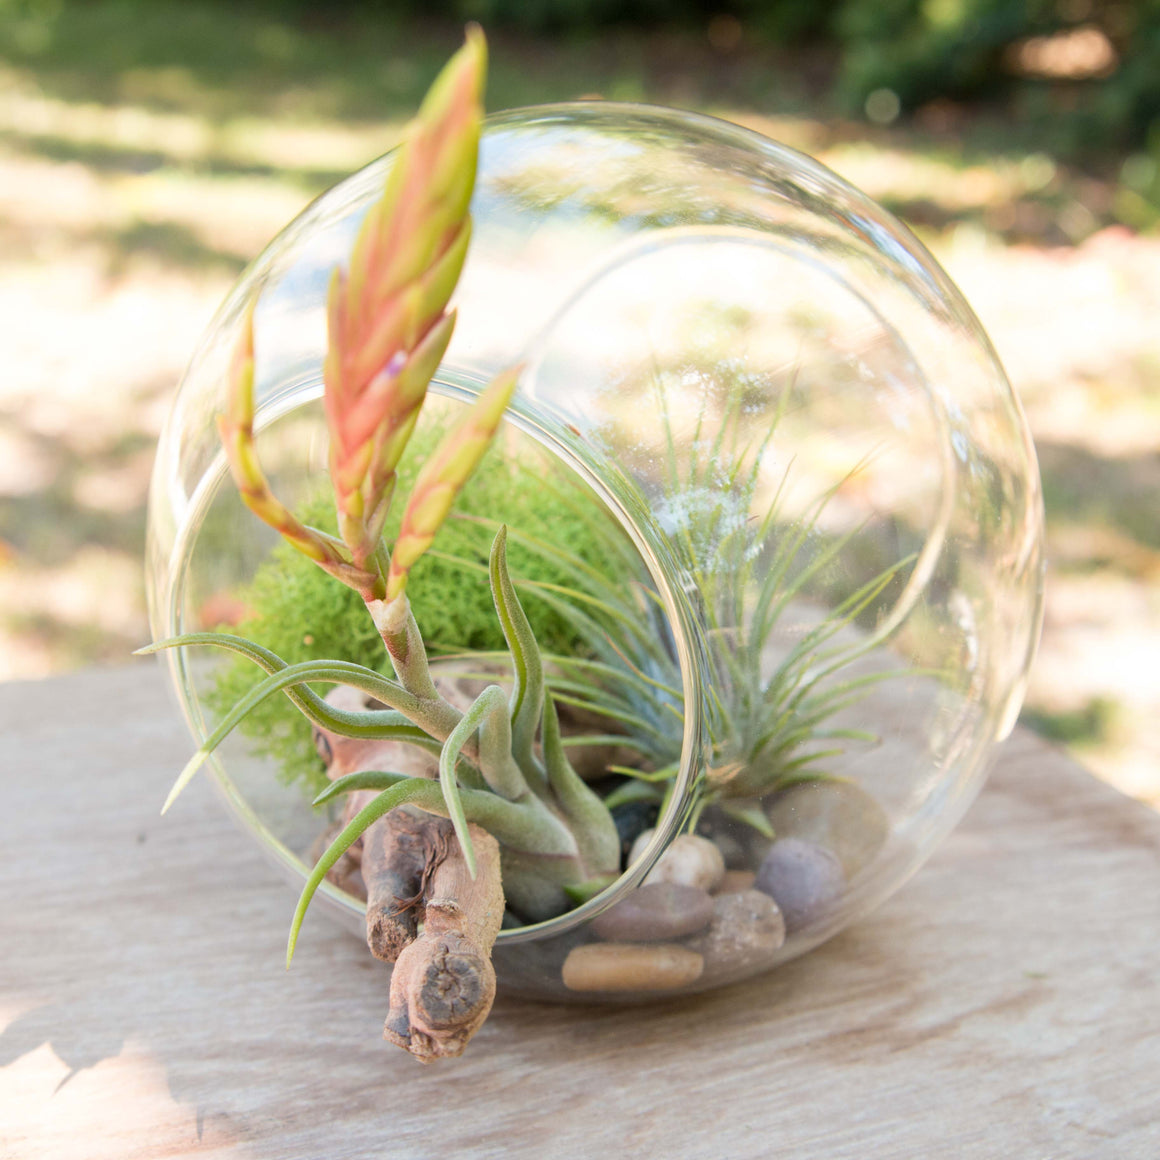 Stay Home DIY Terrarium Kit with Blooming Medusa, Ionantha and Downloadable Lesson Plan + Activities